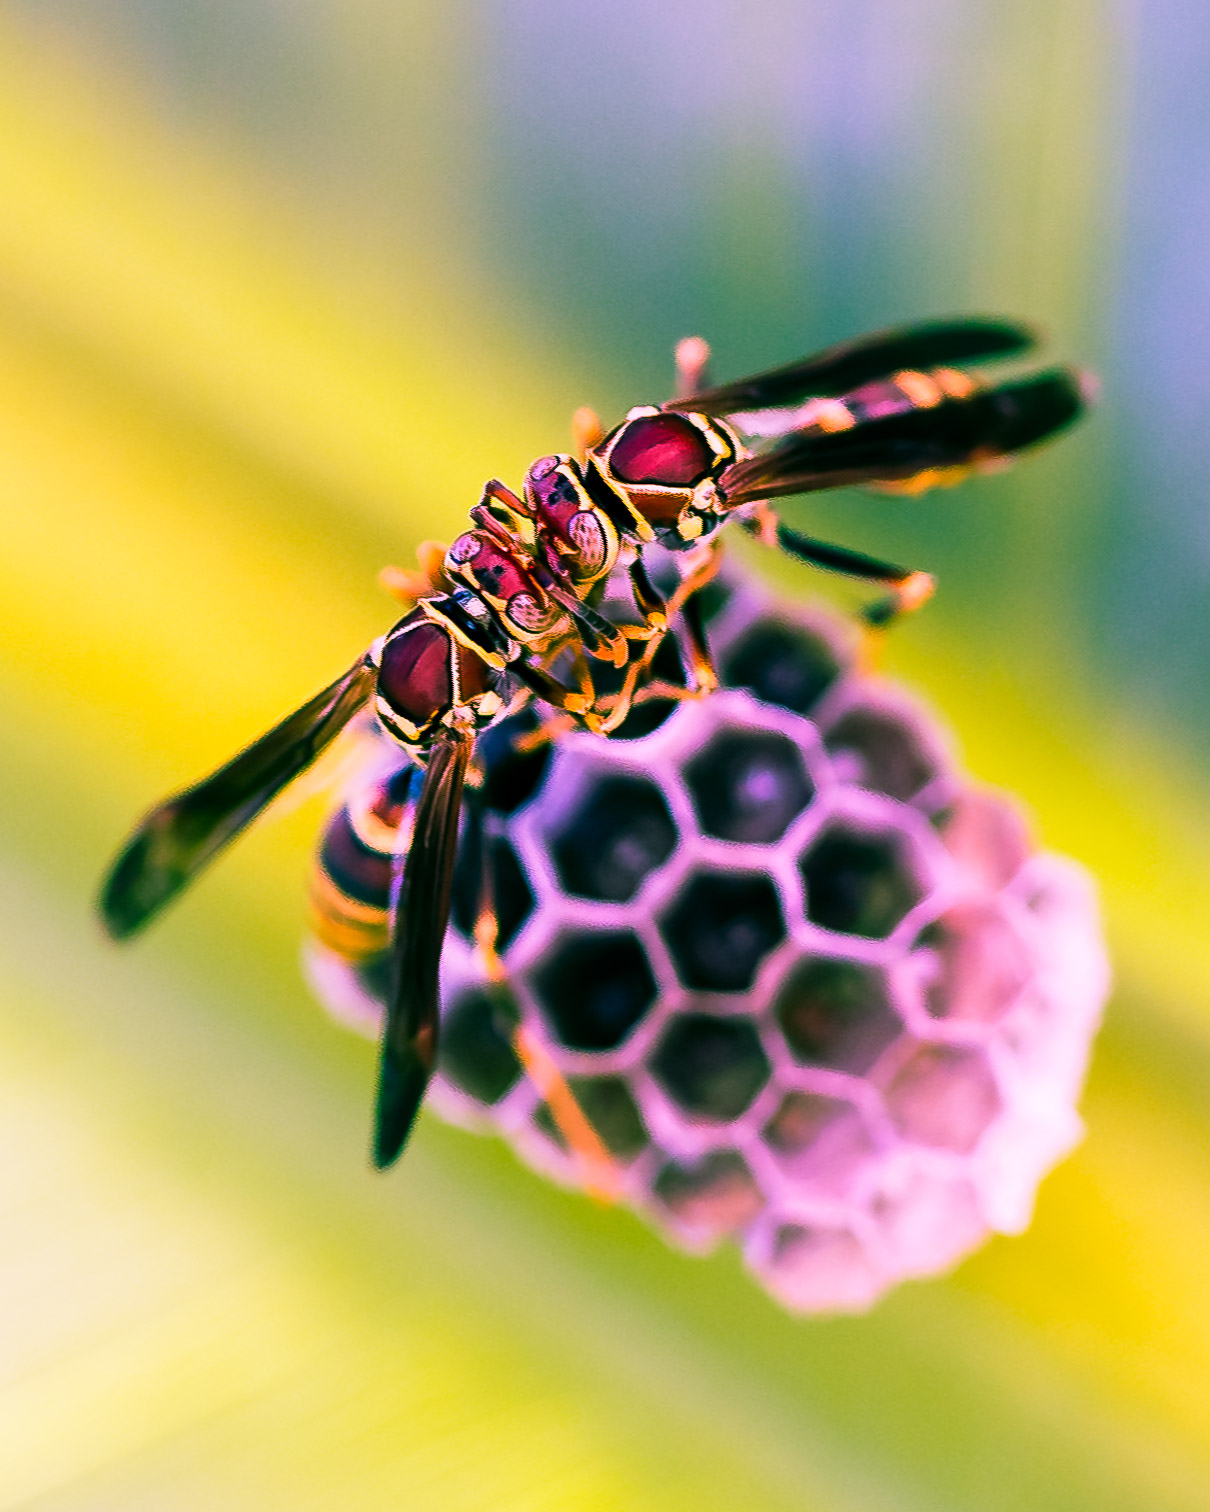 alexa-wright-color-photography-wasps.jpg